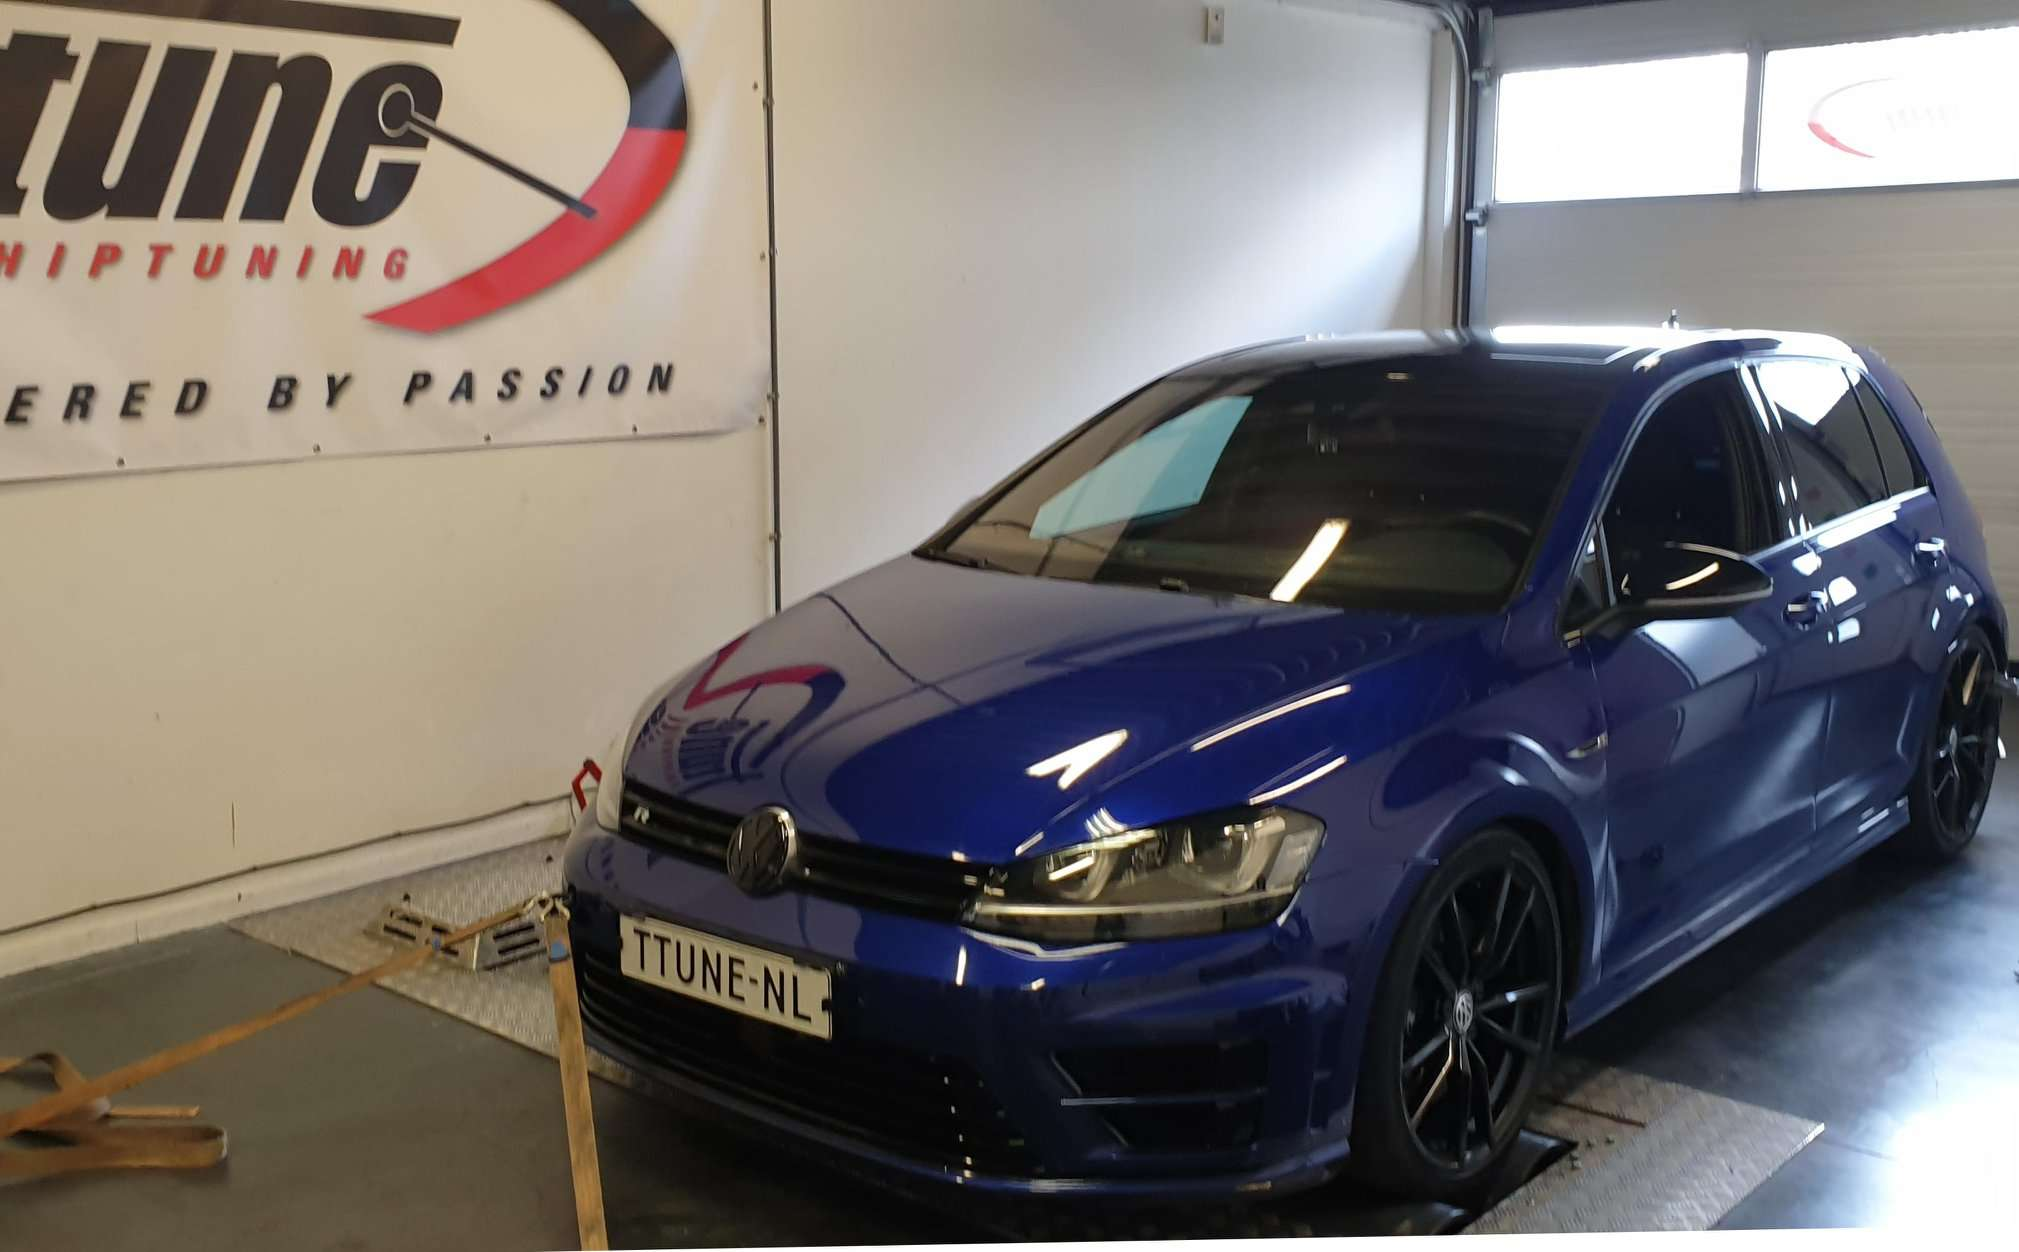 VW Golf 7R stage 1+